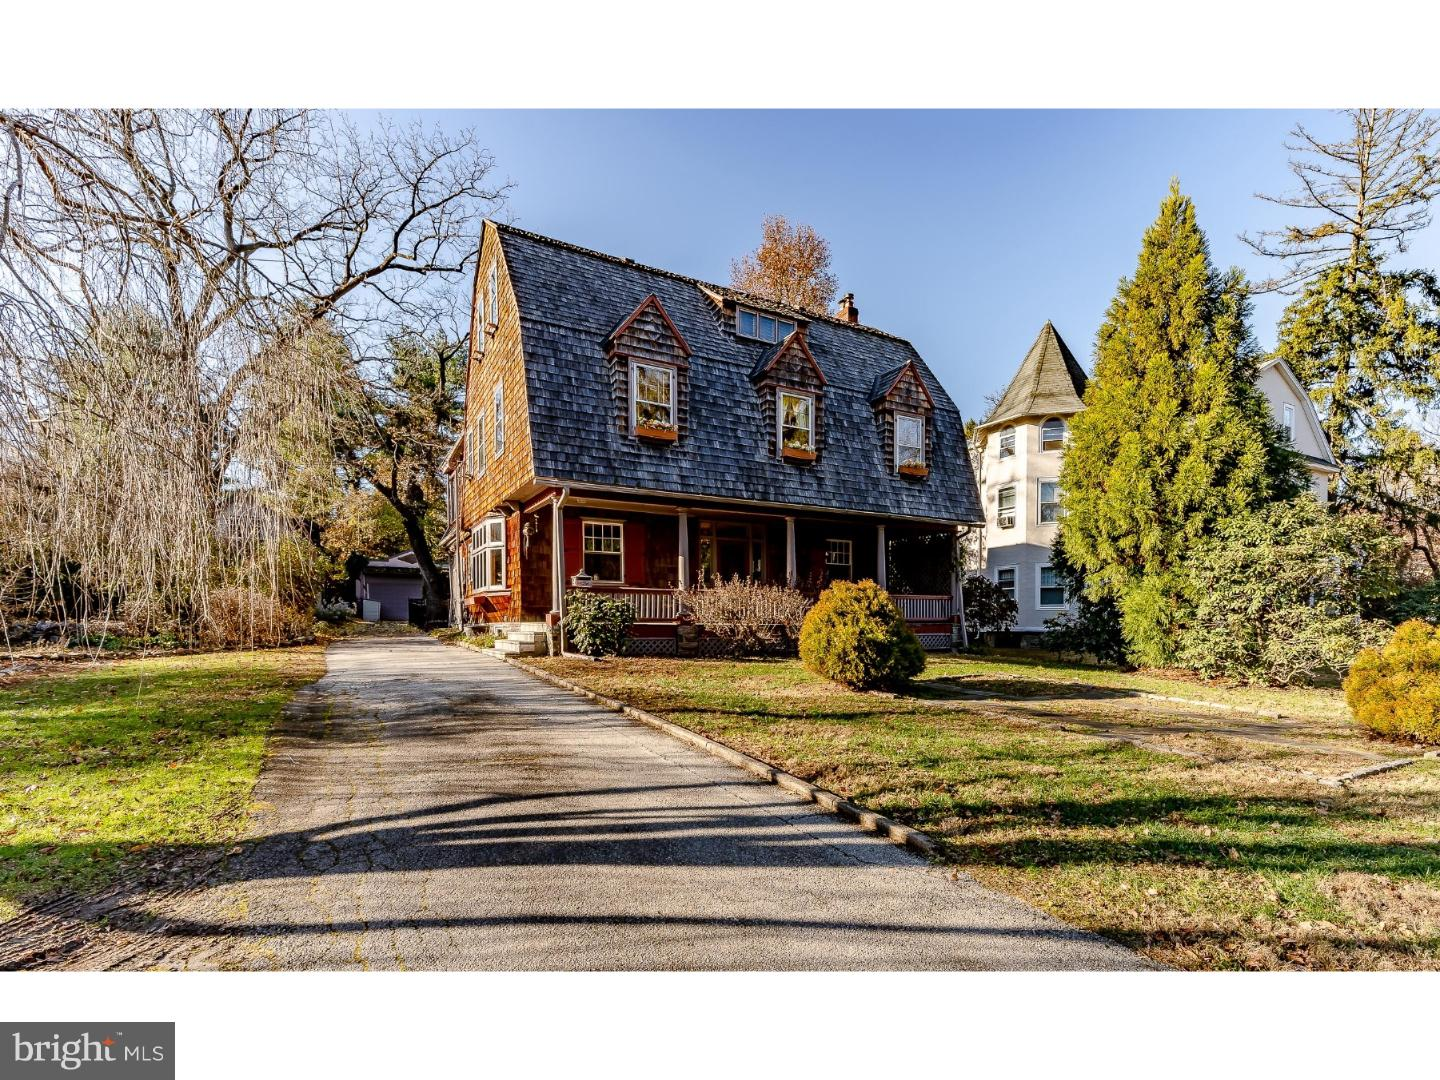 412 N CHESTER ROAD, SWARTHMORE, PA 19081